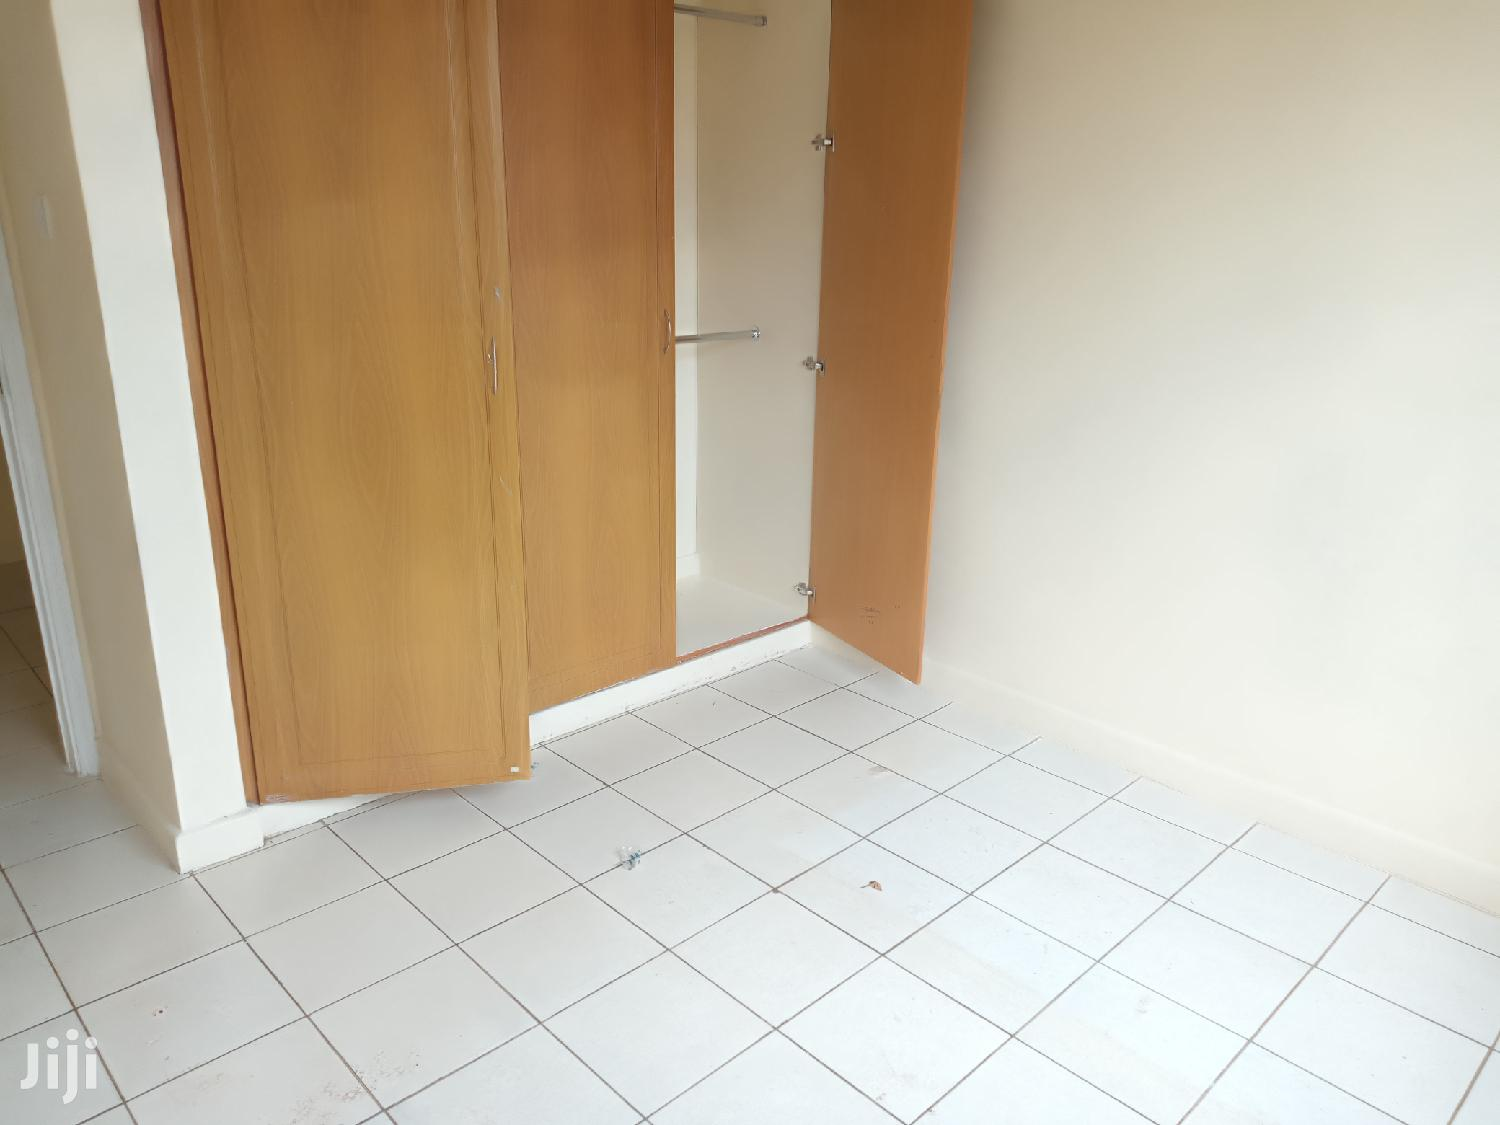 Spacious 3br Apartment To Let Off Riara Rd | Houses & Apartments For Rent for sale in Kilimani, Nairobi, Kenya